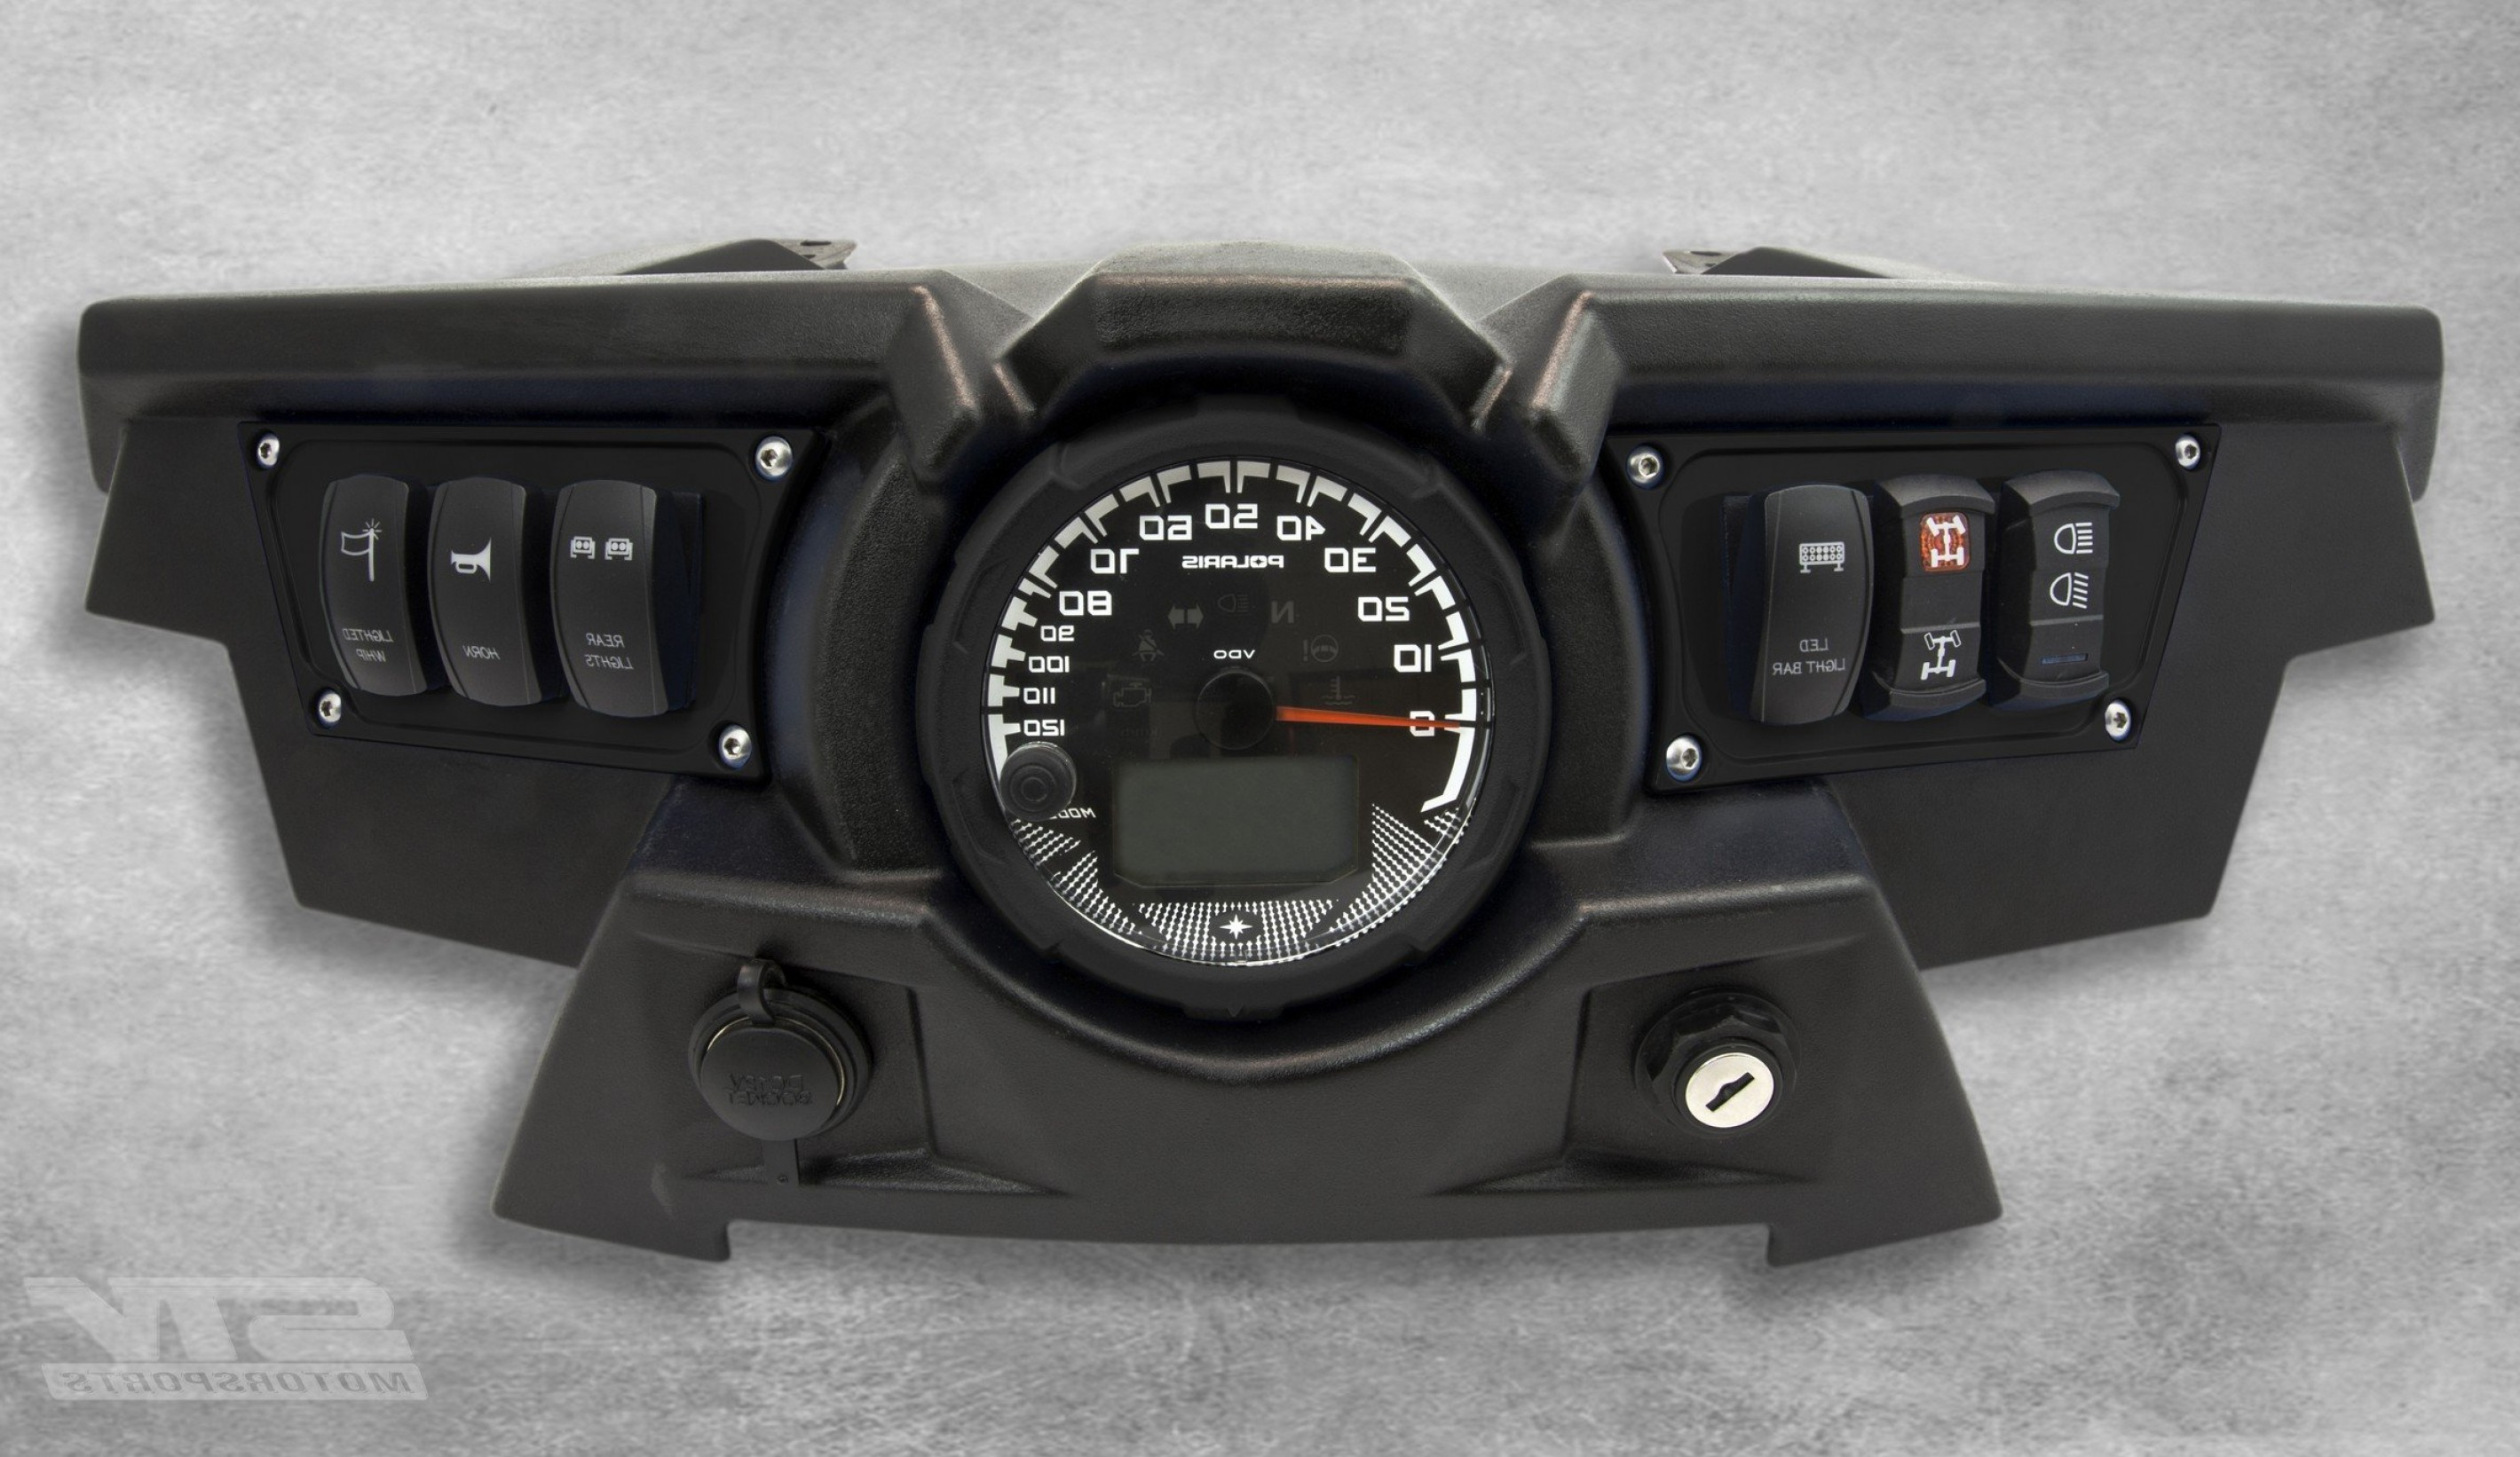 RZR Vector Black And White: Stv Motorsports Custom Aluminum Black Dash Panel For Polaris Rzr Xp With Laser Rocker Switches Included Dp